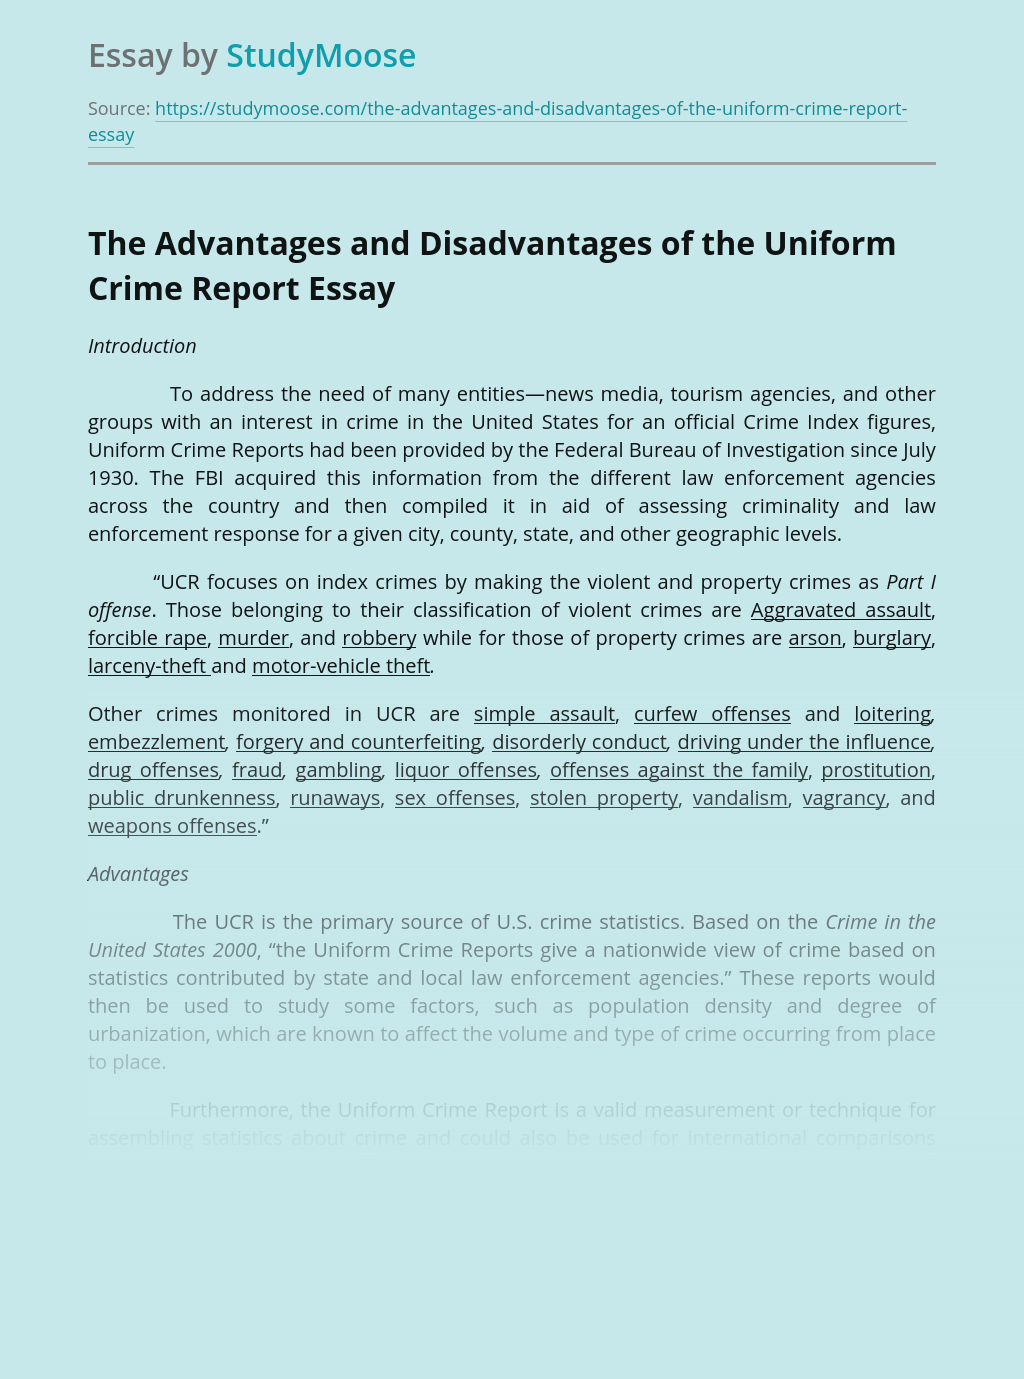 The Advantages and Disadvantages of the Uniform Crime Report